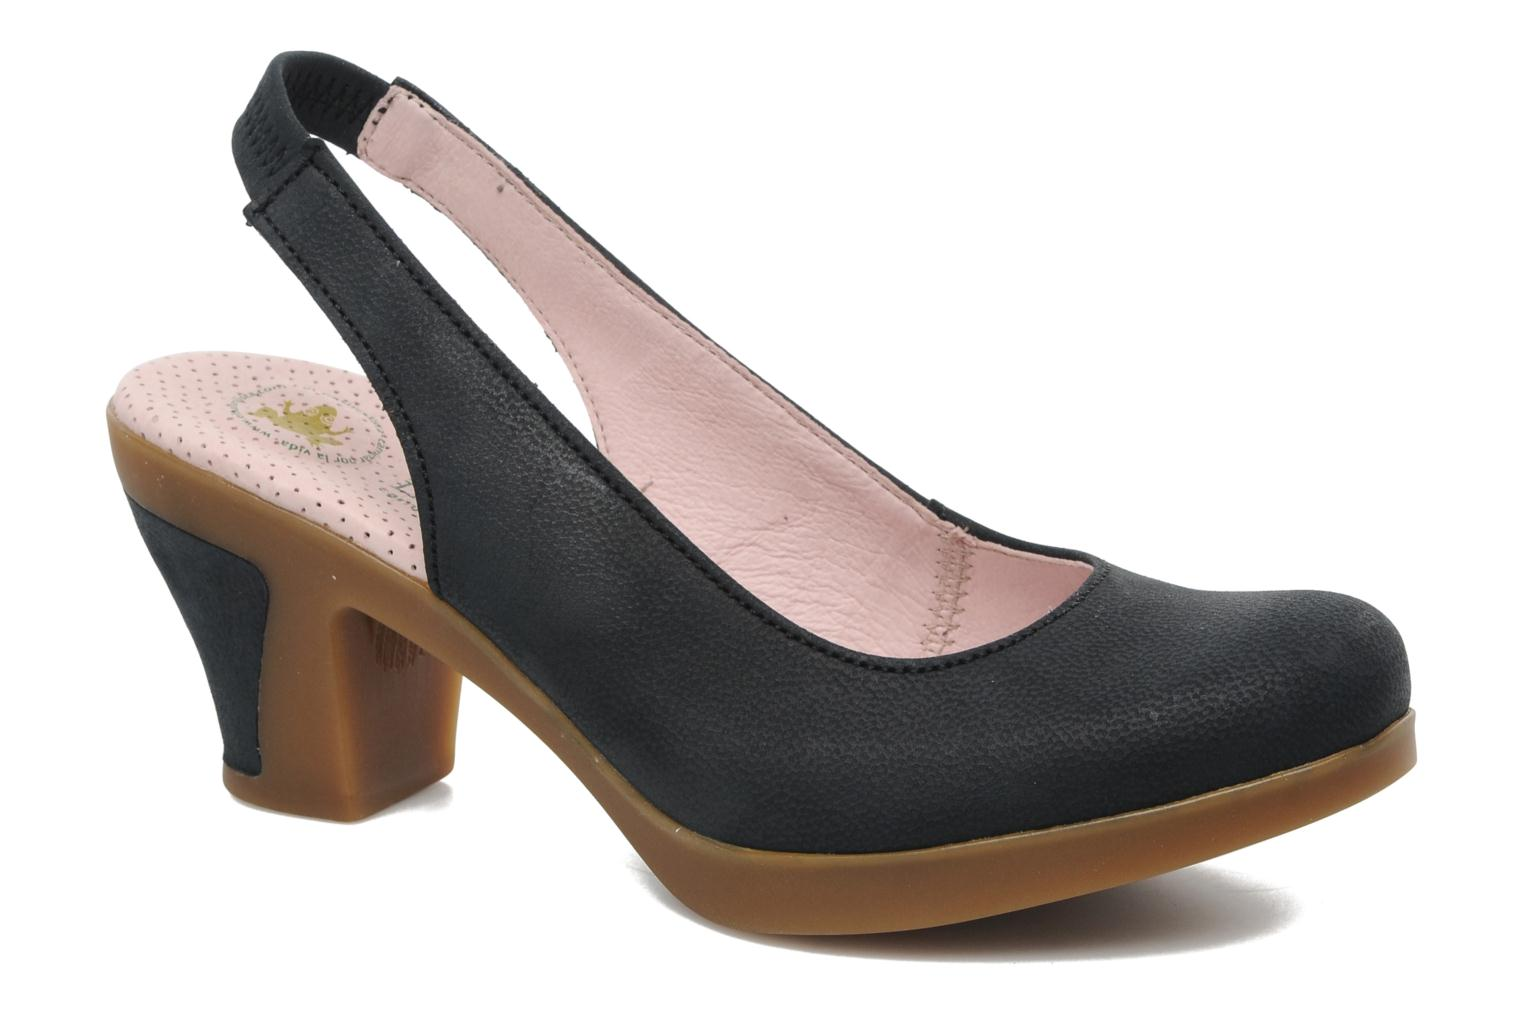 Pumps Espiral N583 by El Naturalista